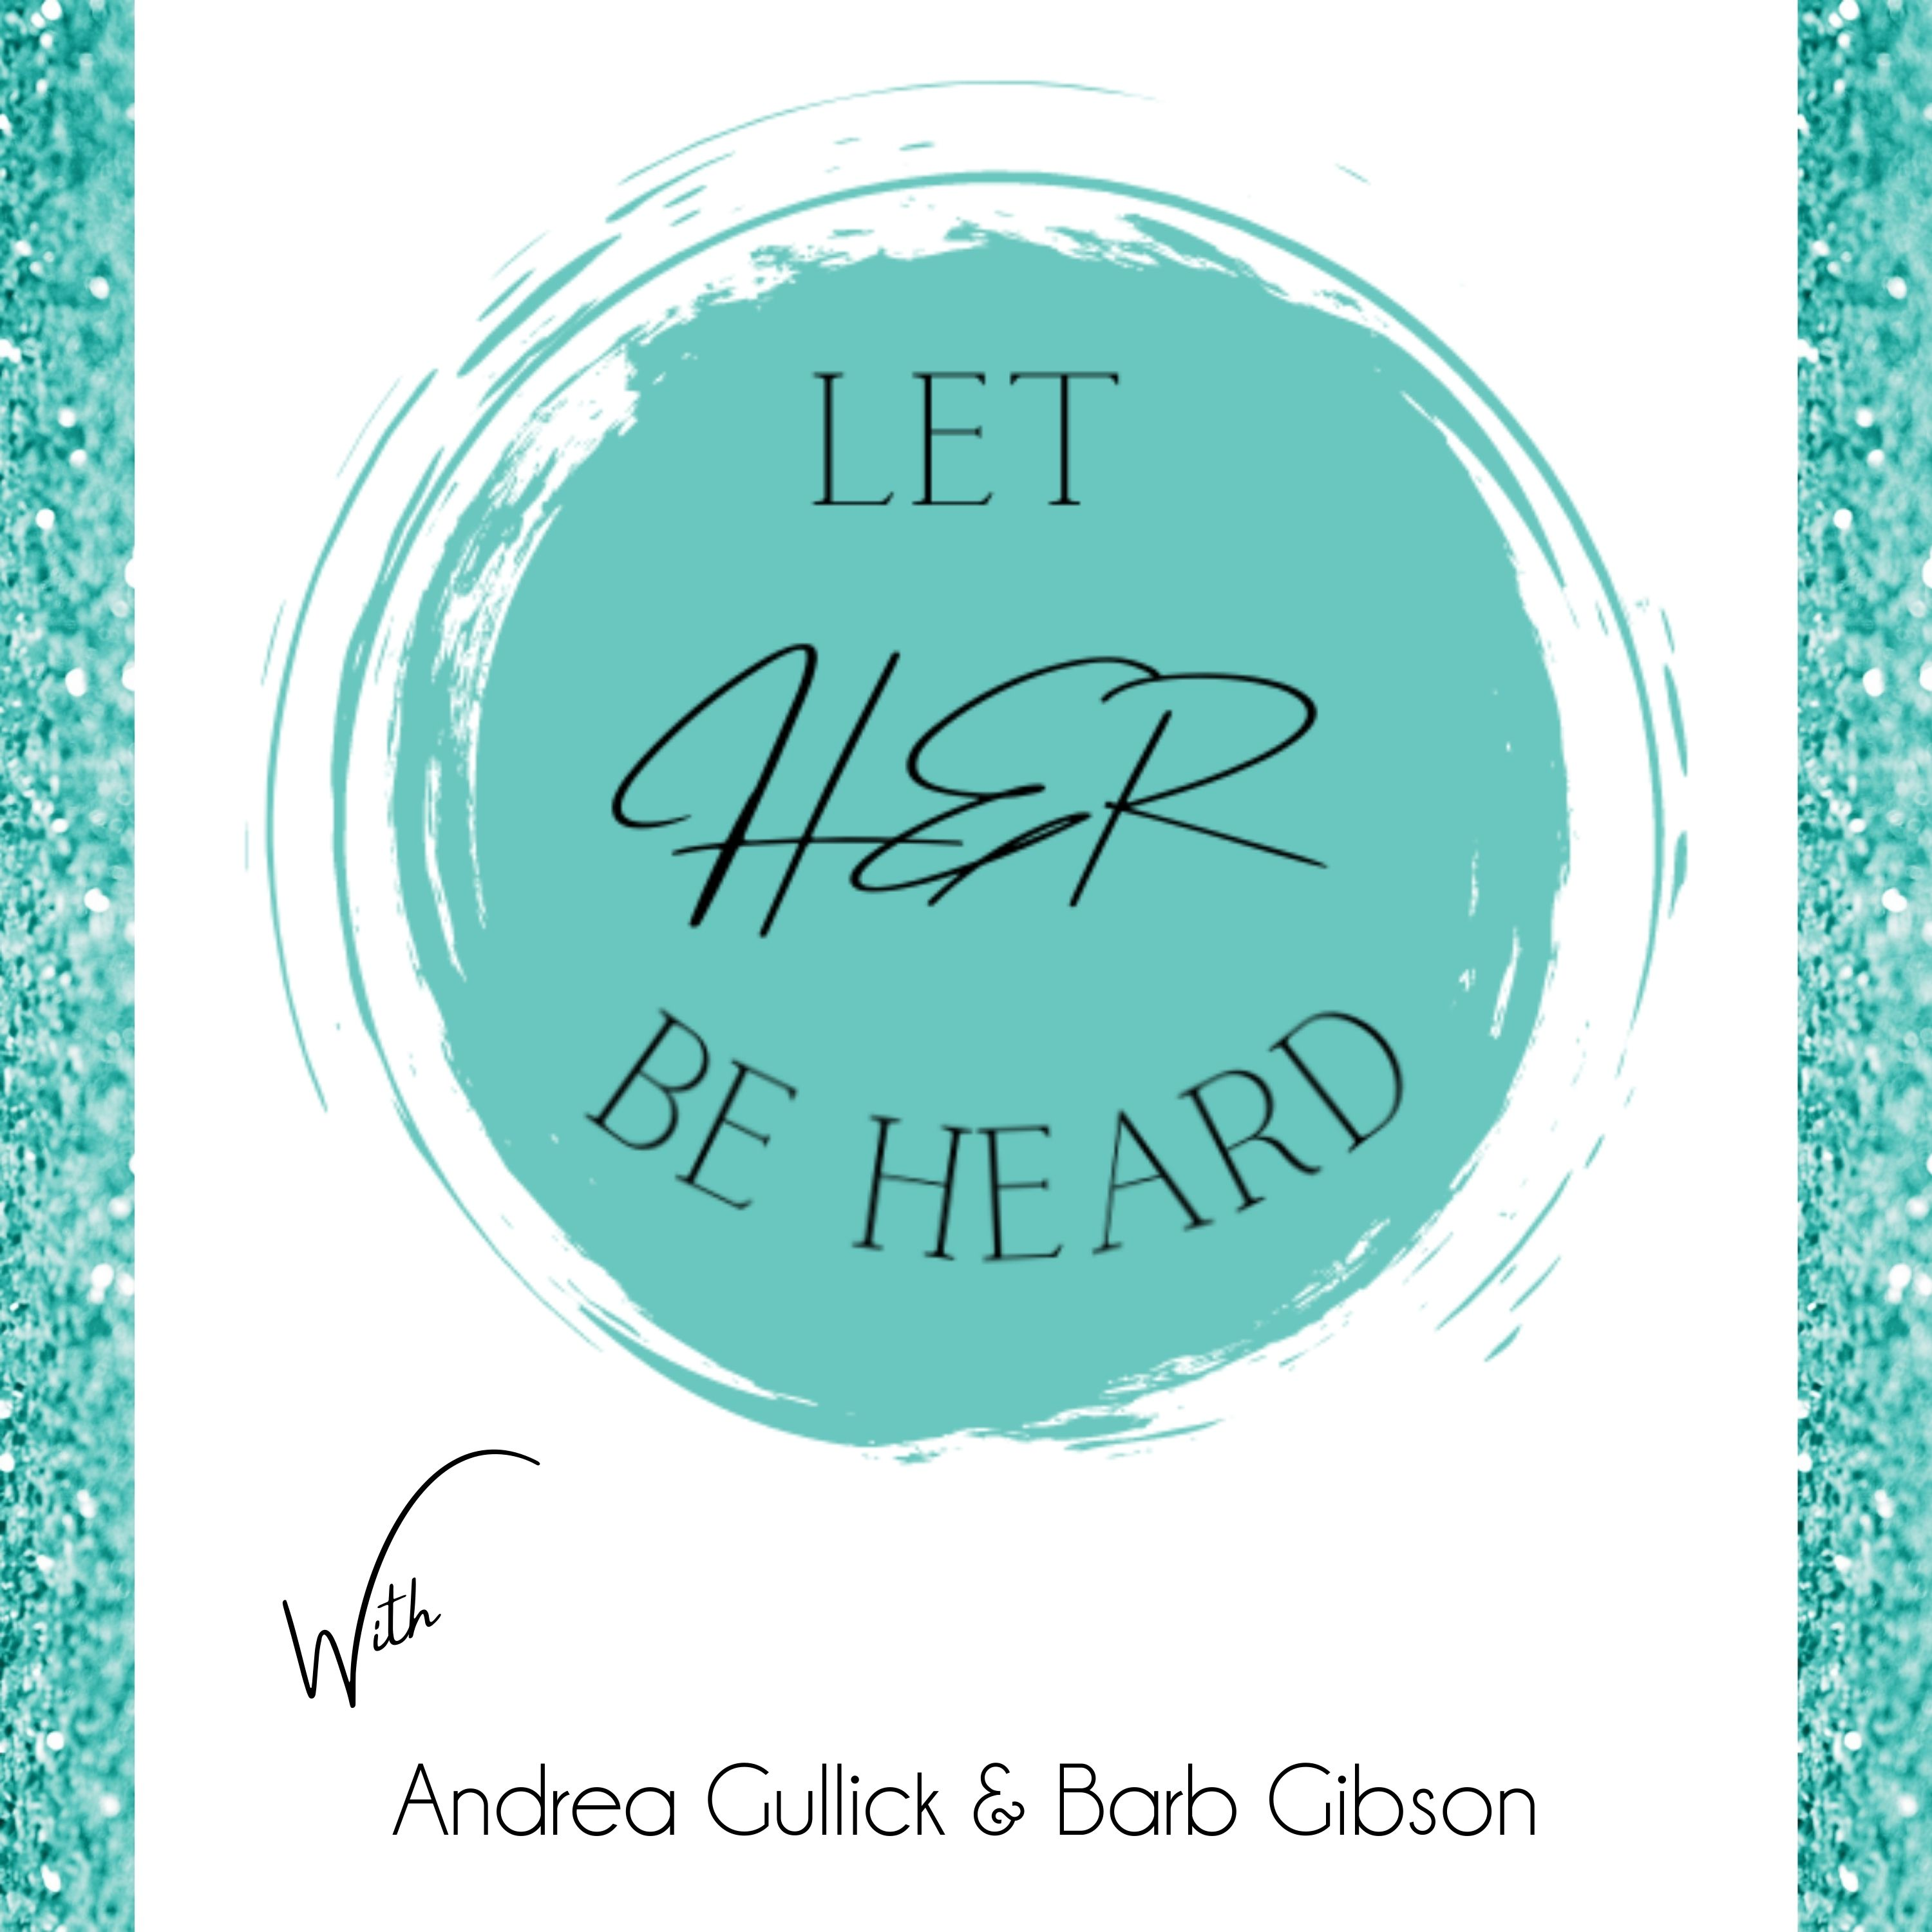 Show artwork for Let HER Be Heard